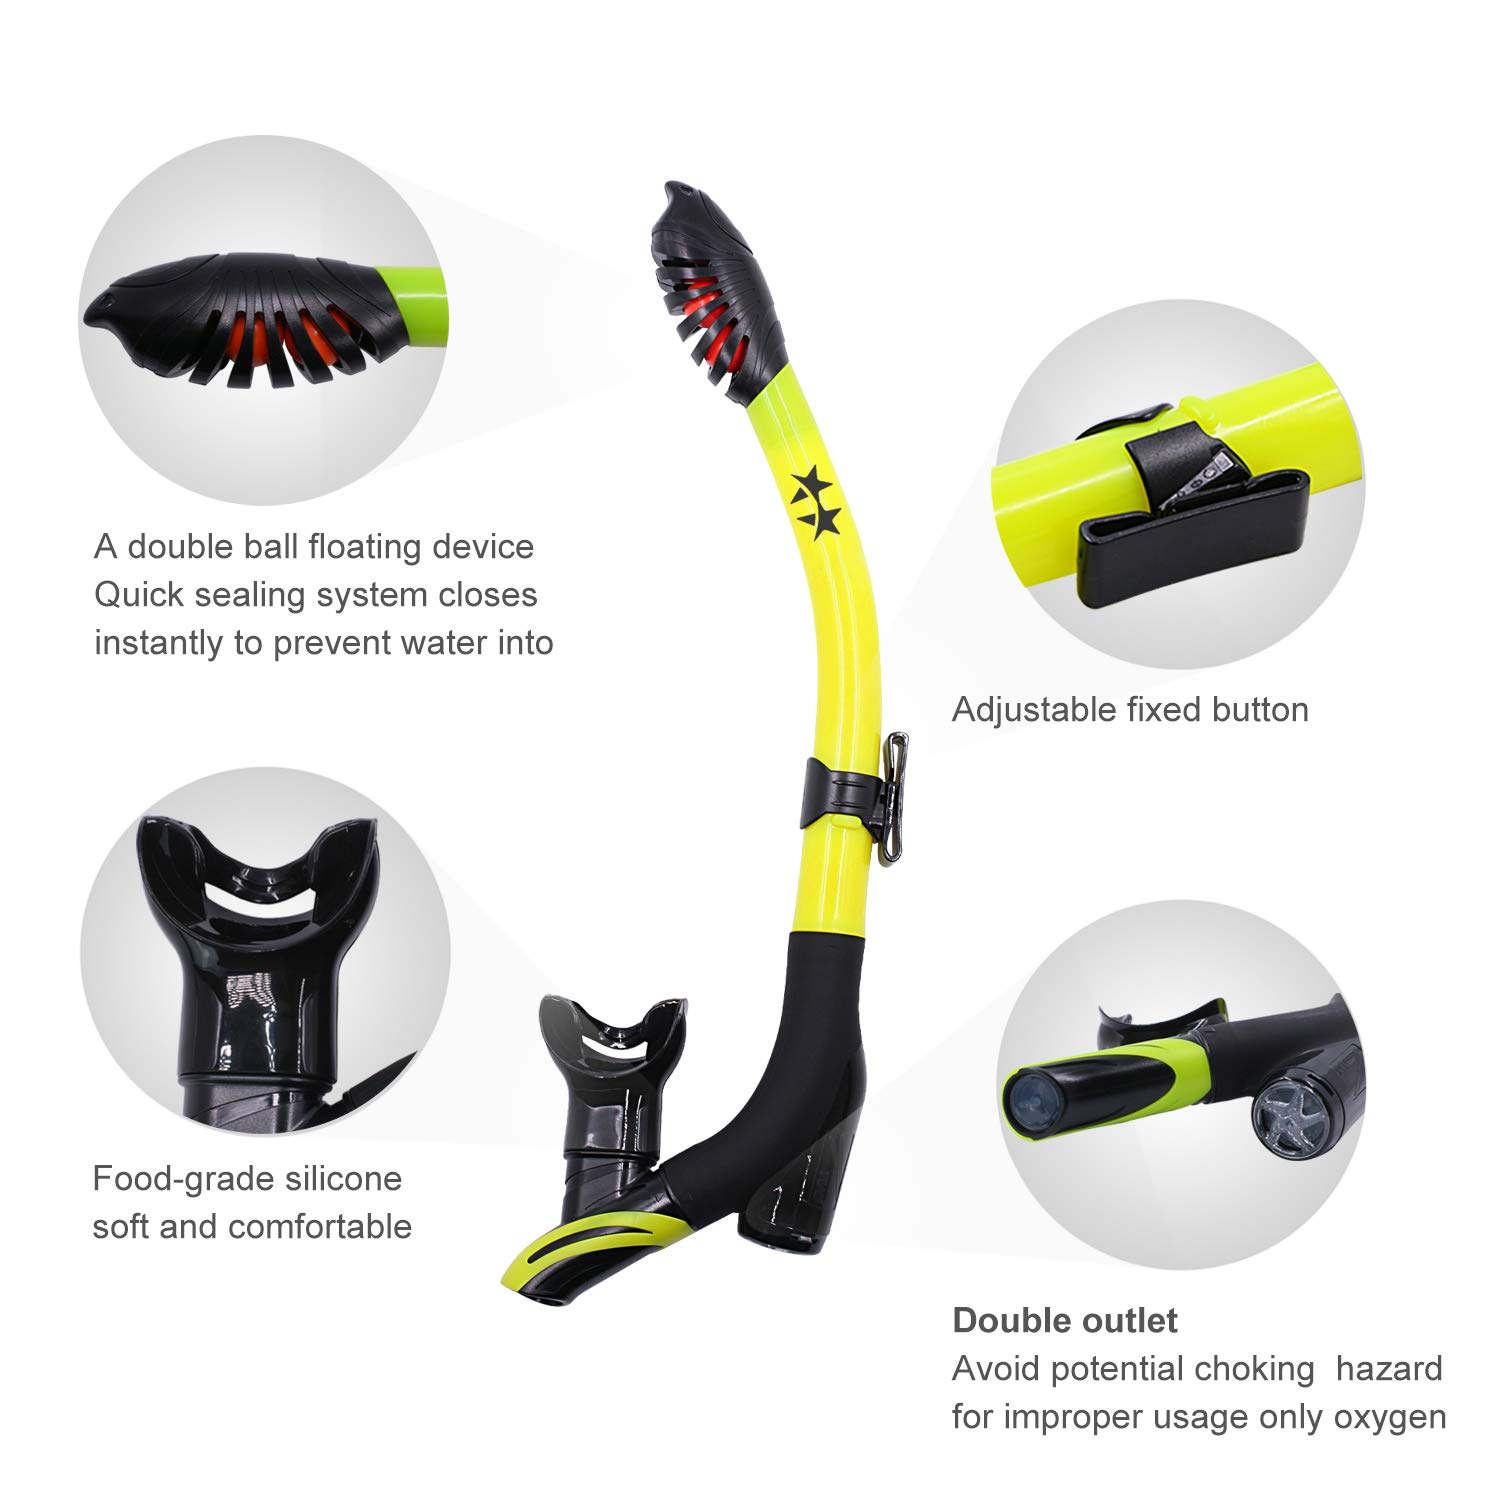 Startostar Dry Snorkel Innovative Dual Way Purge Valve Dry Top Diving Breathing Tube with Silicone Mouthpiece for Snorkeling and Scuba Diving Spearfishing Swimmers Swimming Train